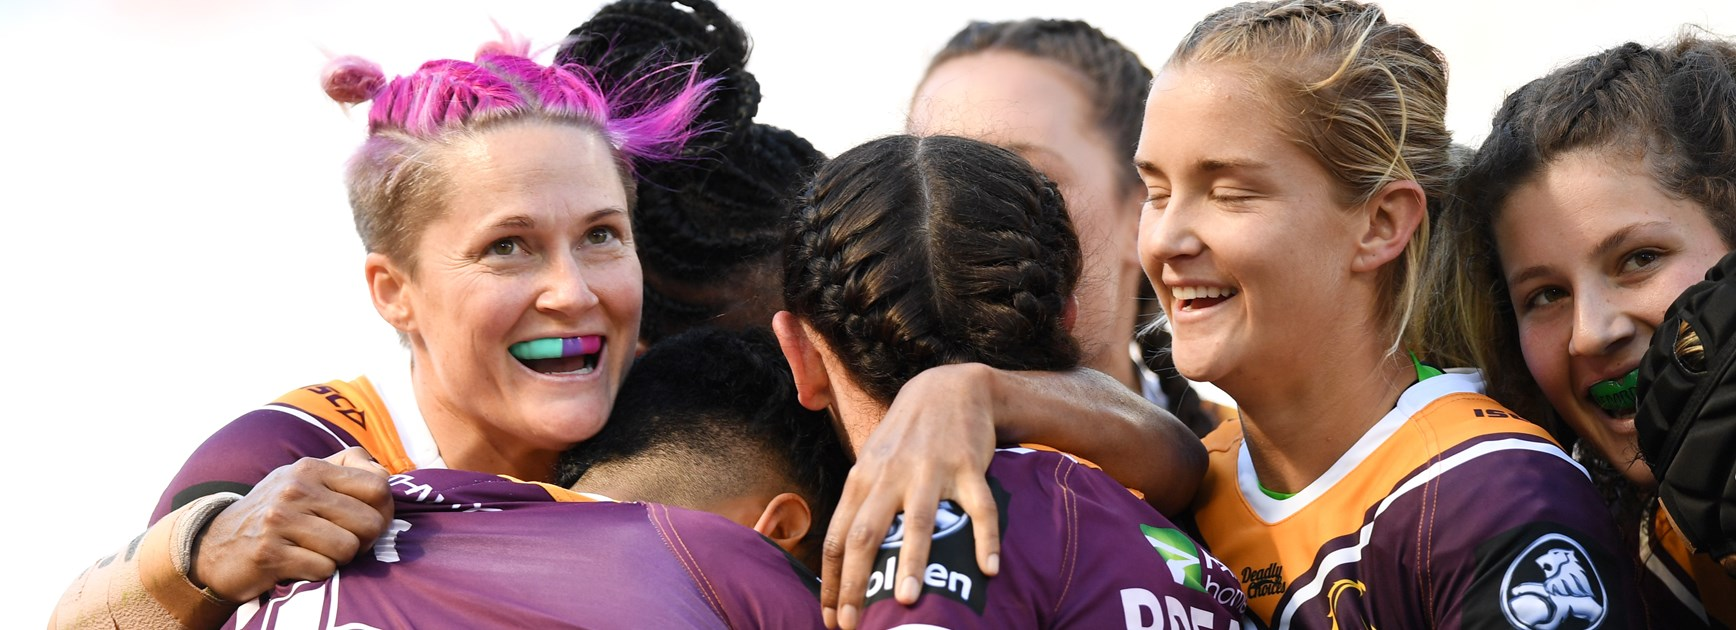 The NRLW season is tough for this mum, but worth it